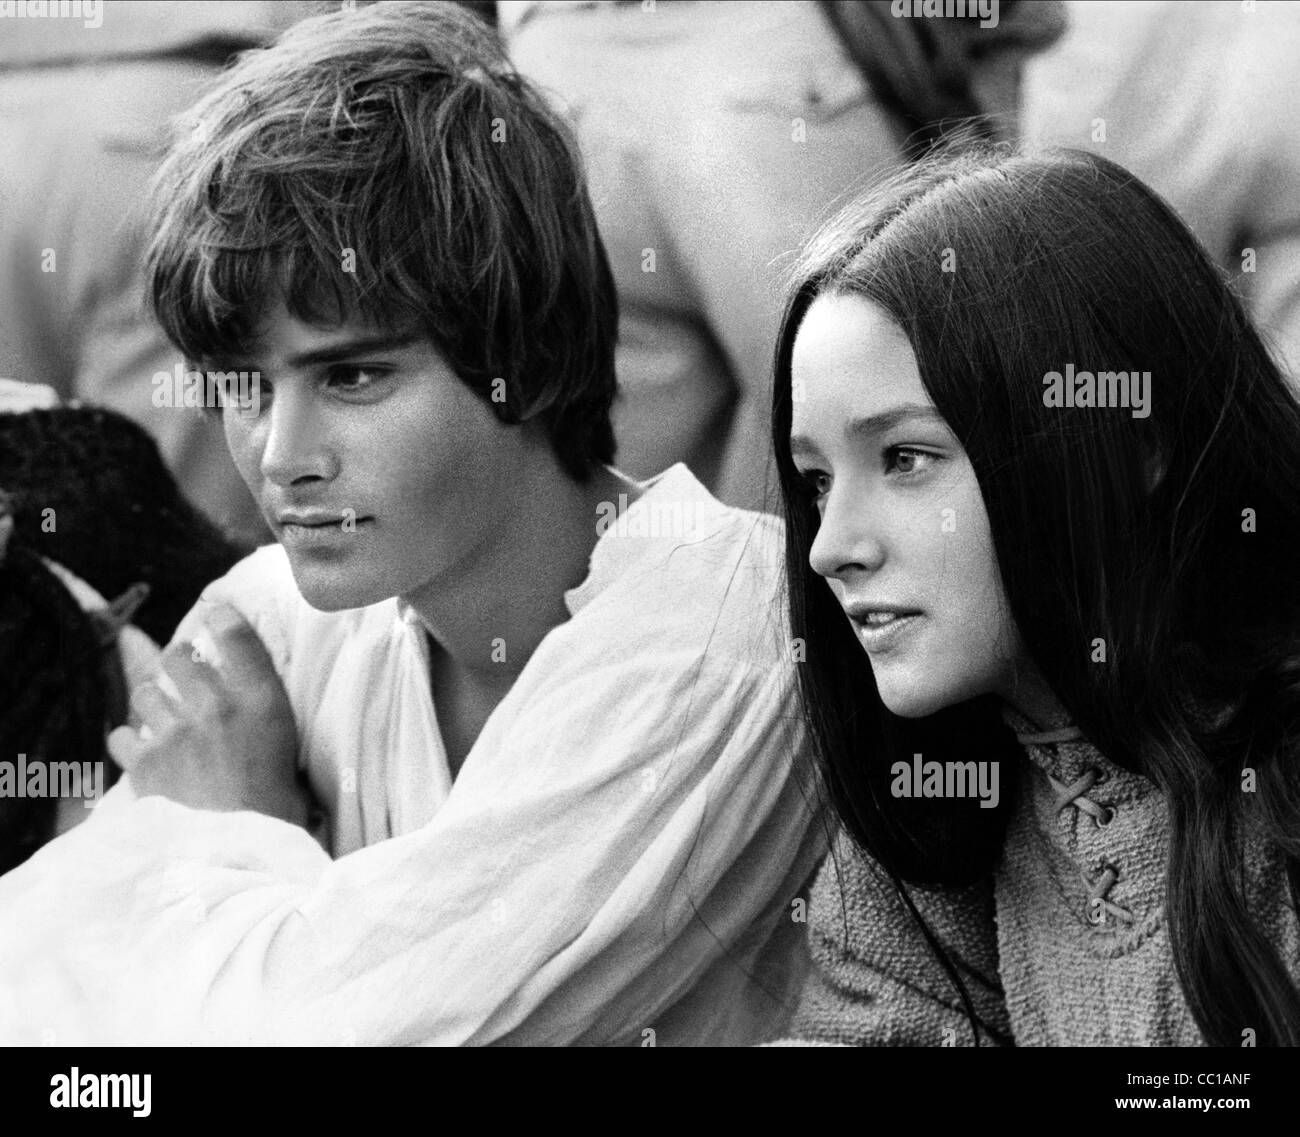 LEONARD WHITING & OLIVIA HUSSEY ROMEO AND JULIET (1968 ...